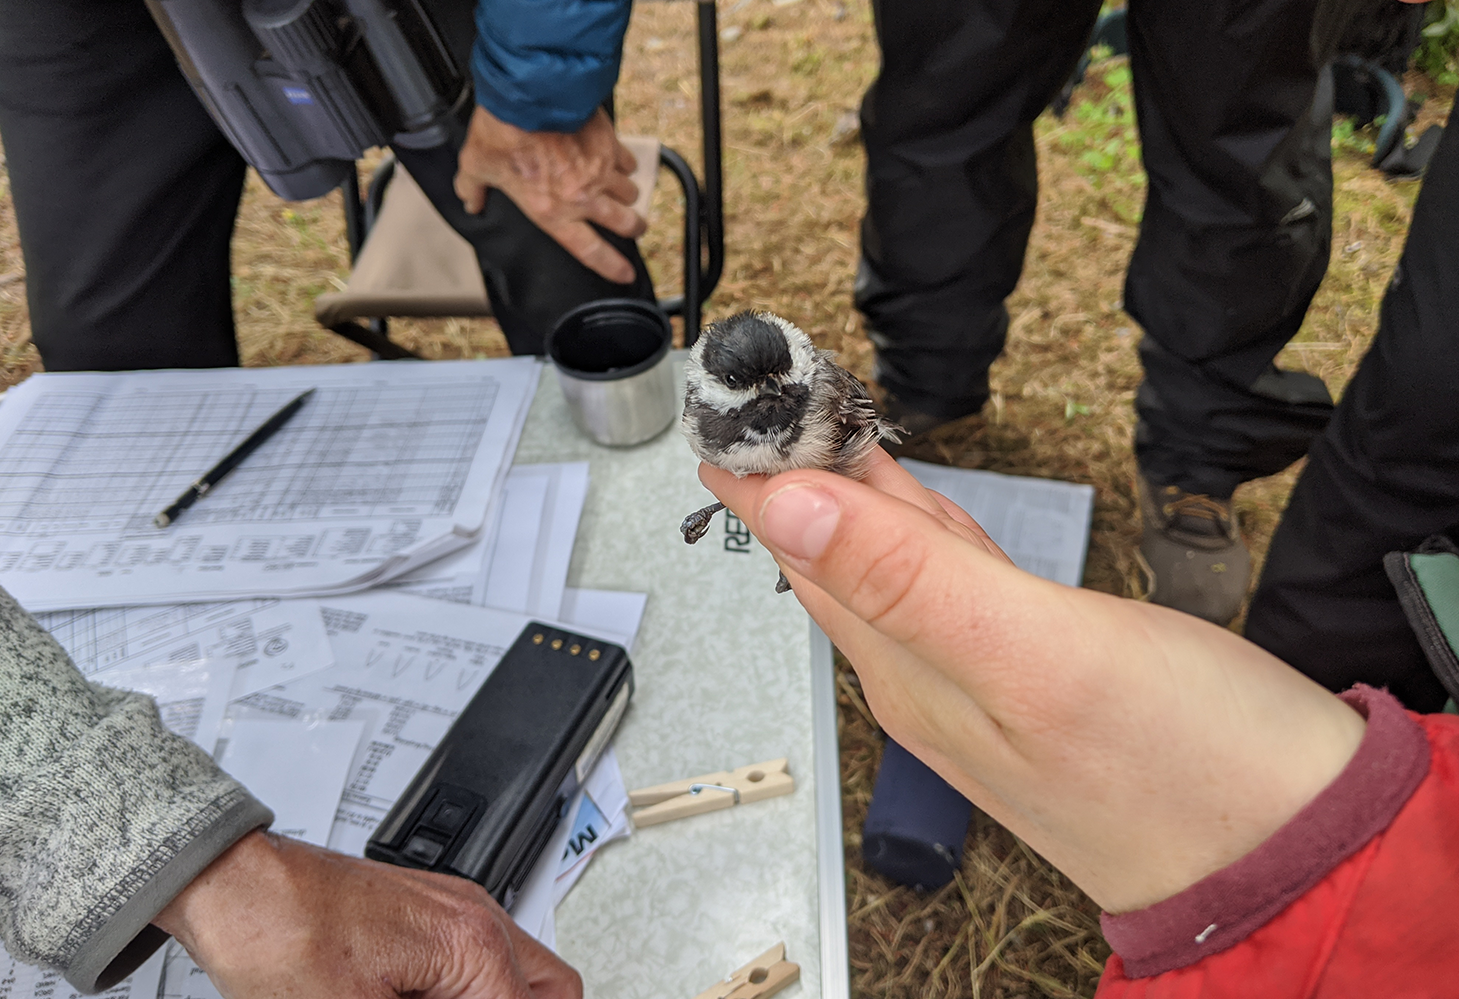 A hand holds a small bird during a research study on wildlife in Glacier National Park